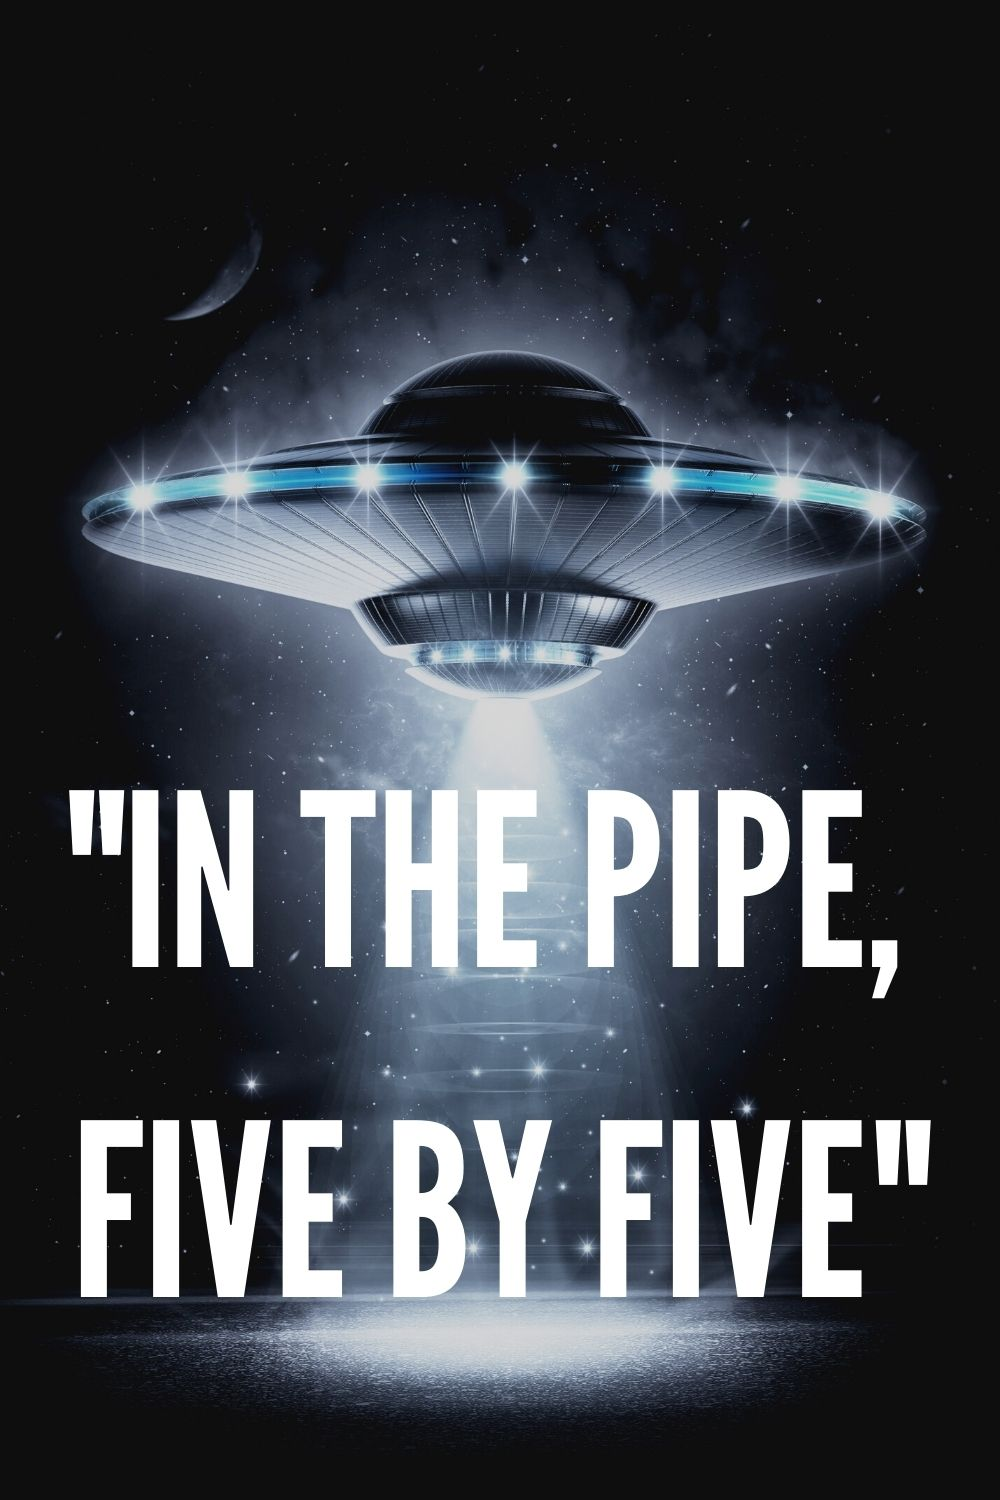 In the pipe five by five